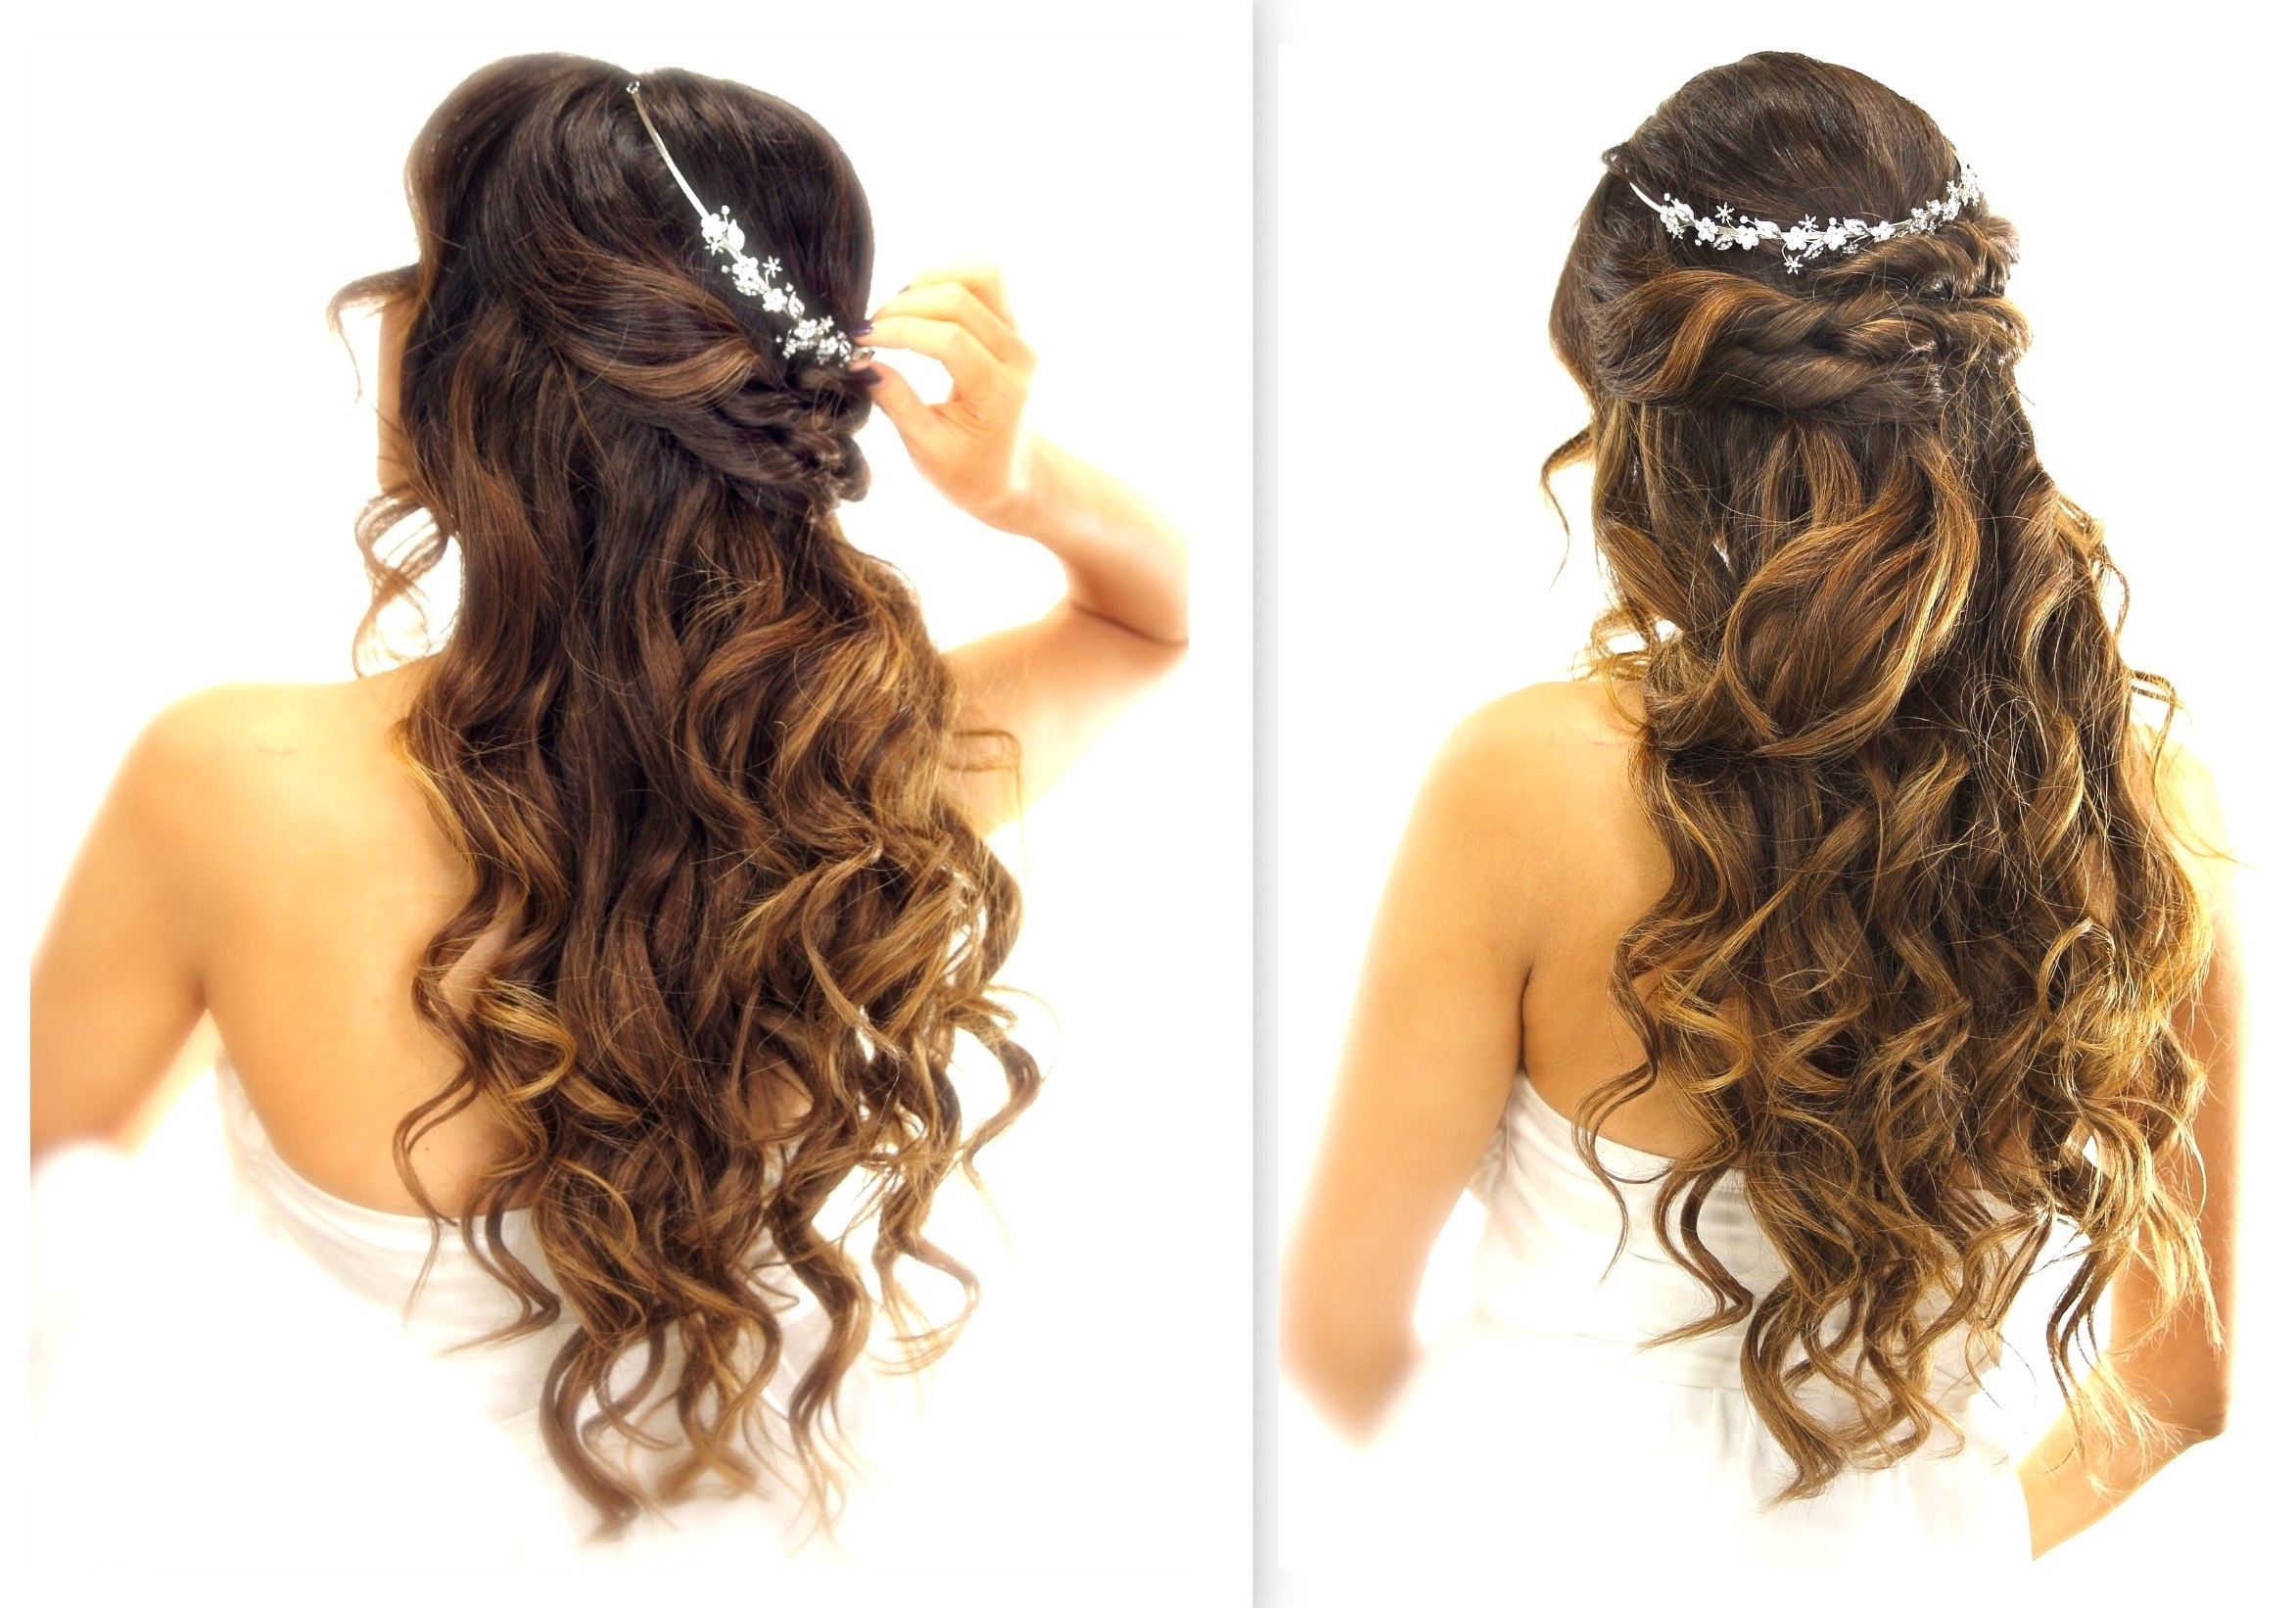 Want To Wear Your Hair Gorgeous Formal Hairstyles Down Cute With Regard To 2018 Cute Easy Wedding Hairstyles For Long Hair (View 15 of 15)